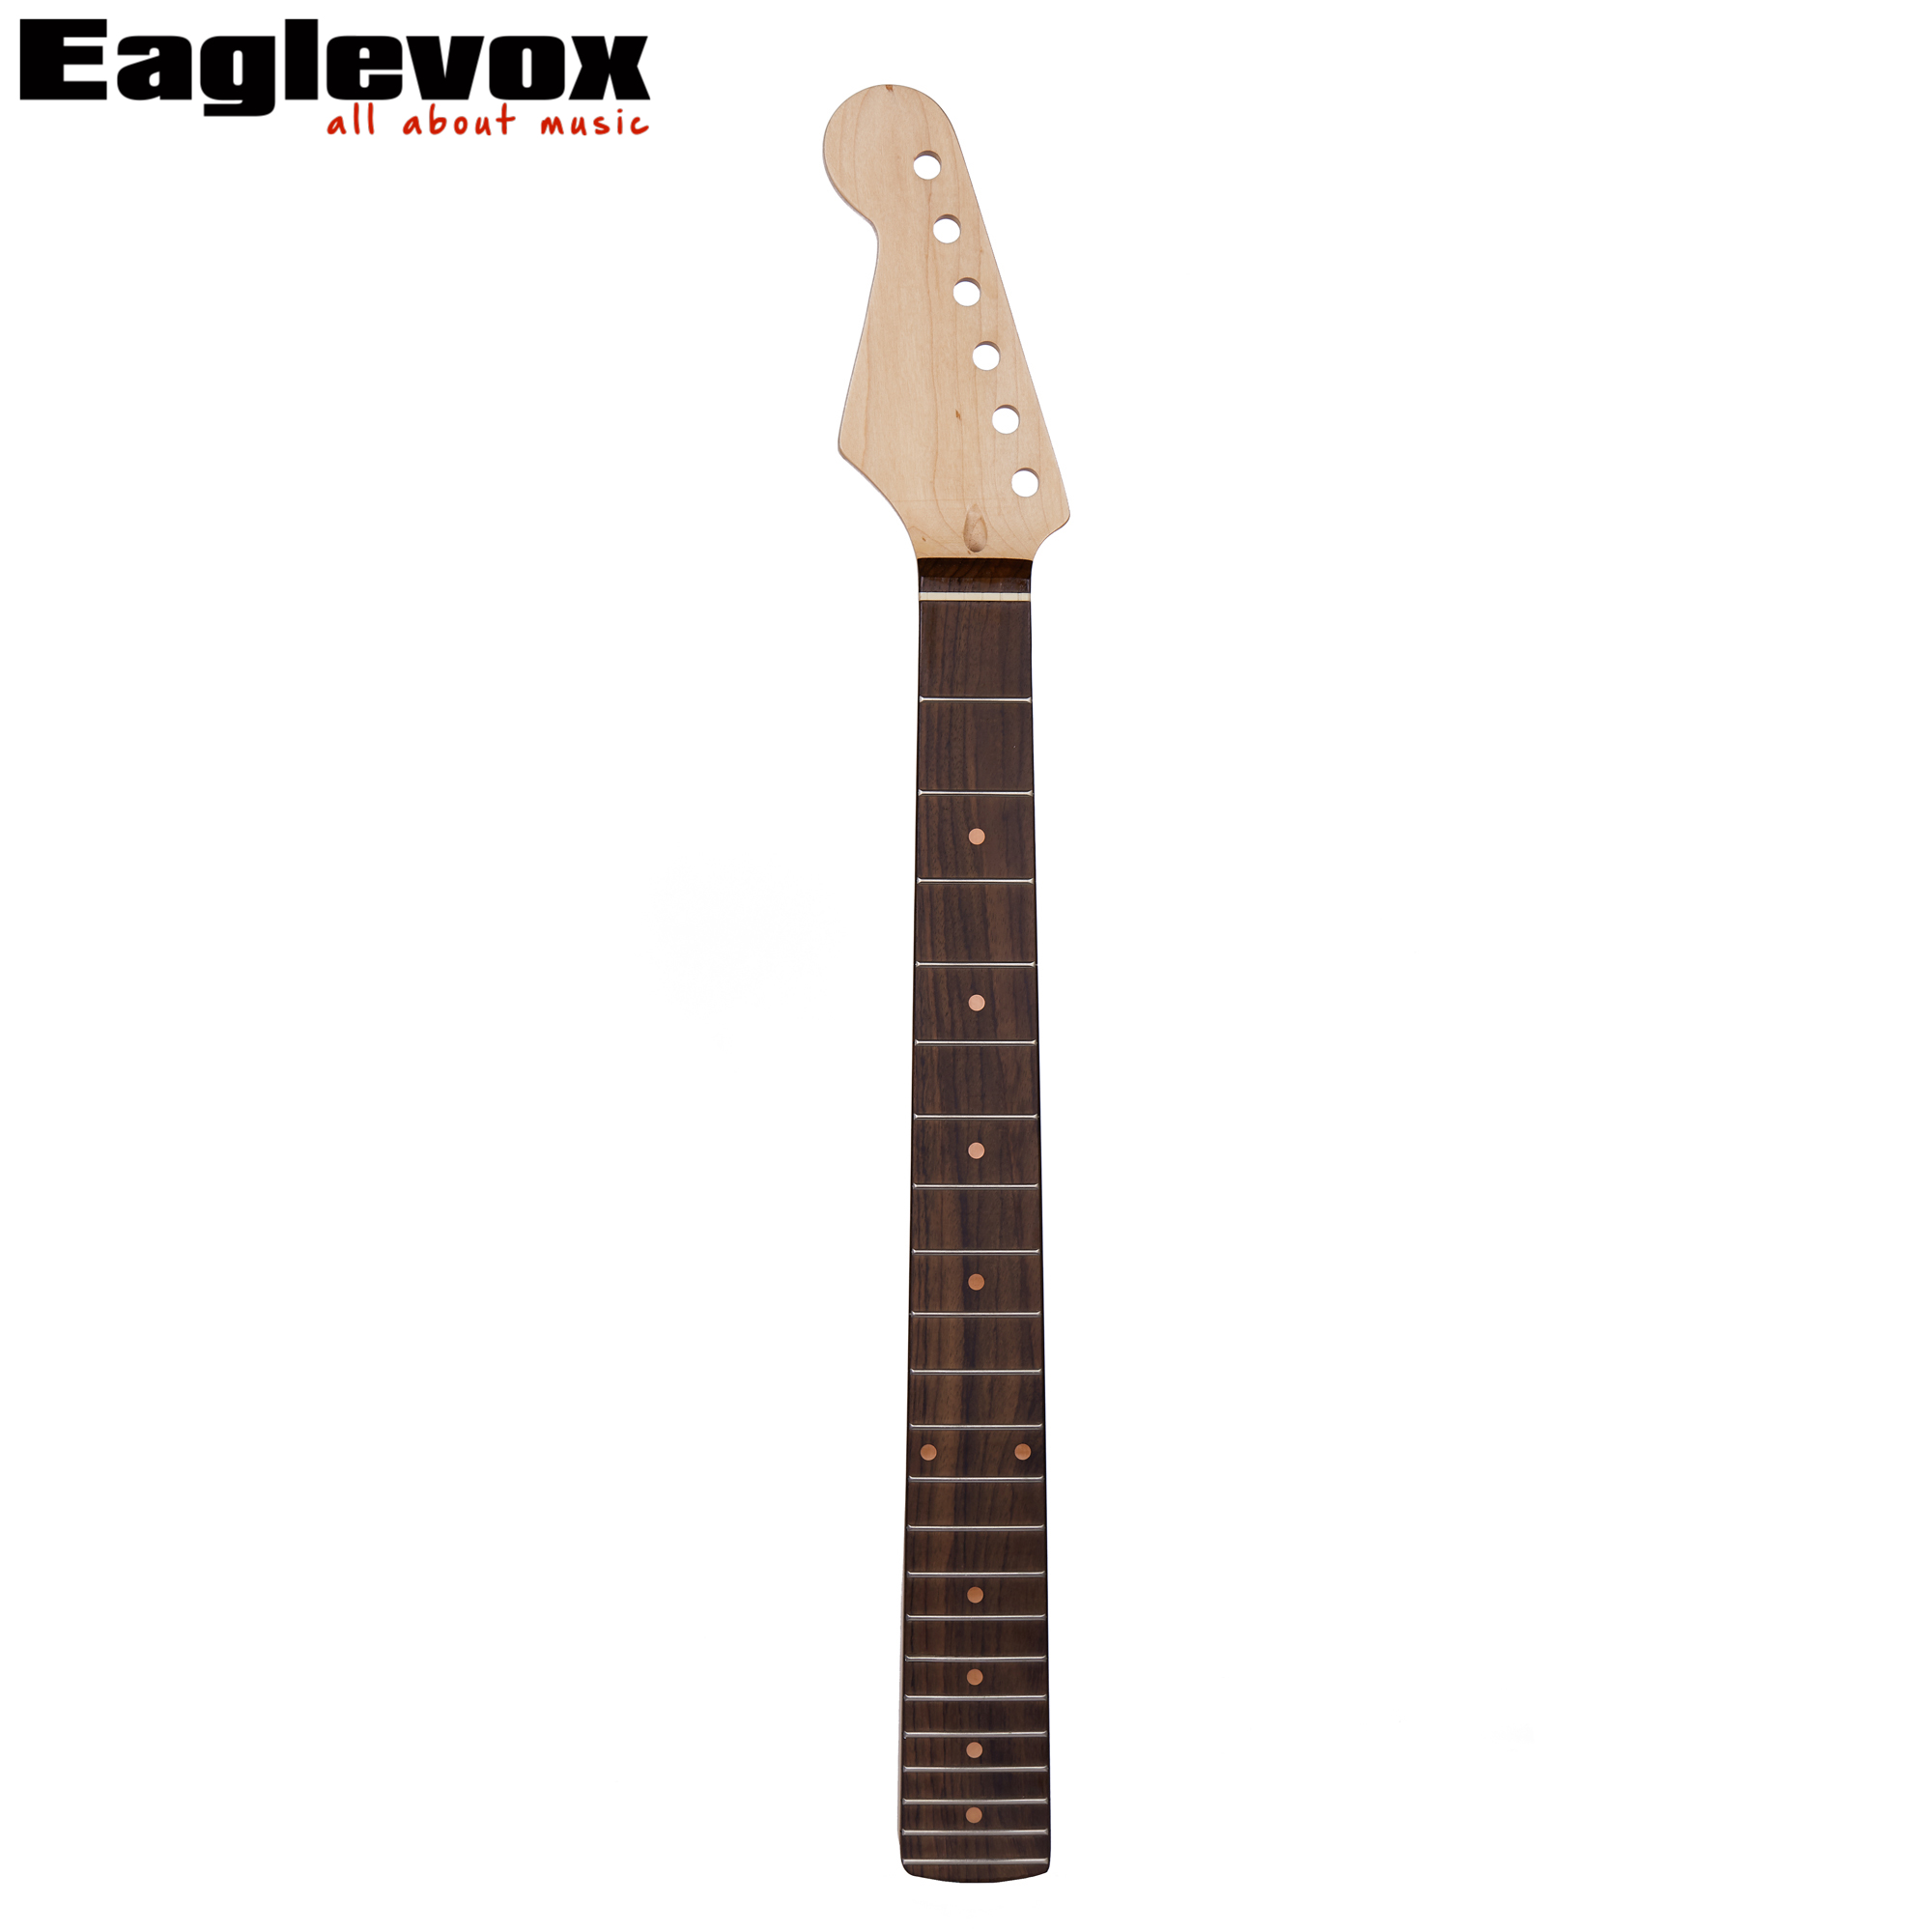 Electric Left Handed Guitar Neck Rosewood fingerboard Made of Maple 10mm Head Machine Peg Hole 22 frets<br>